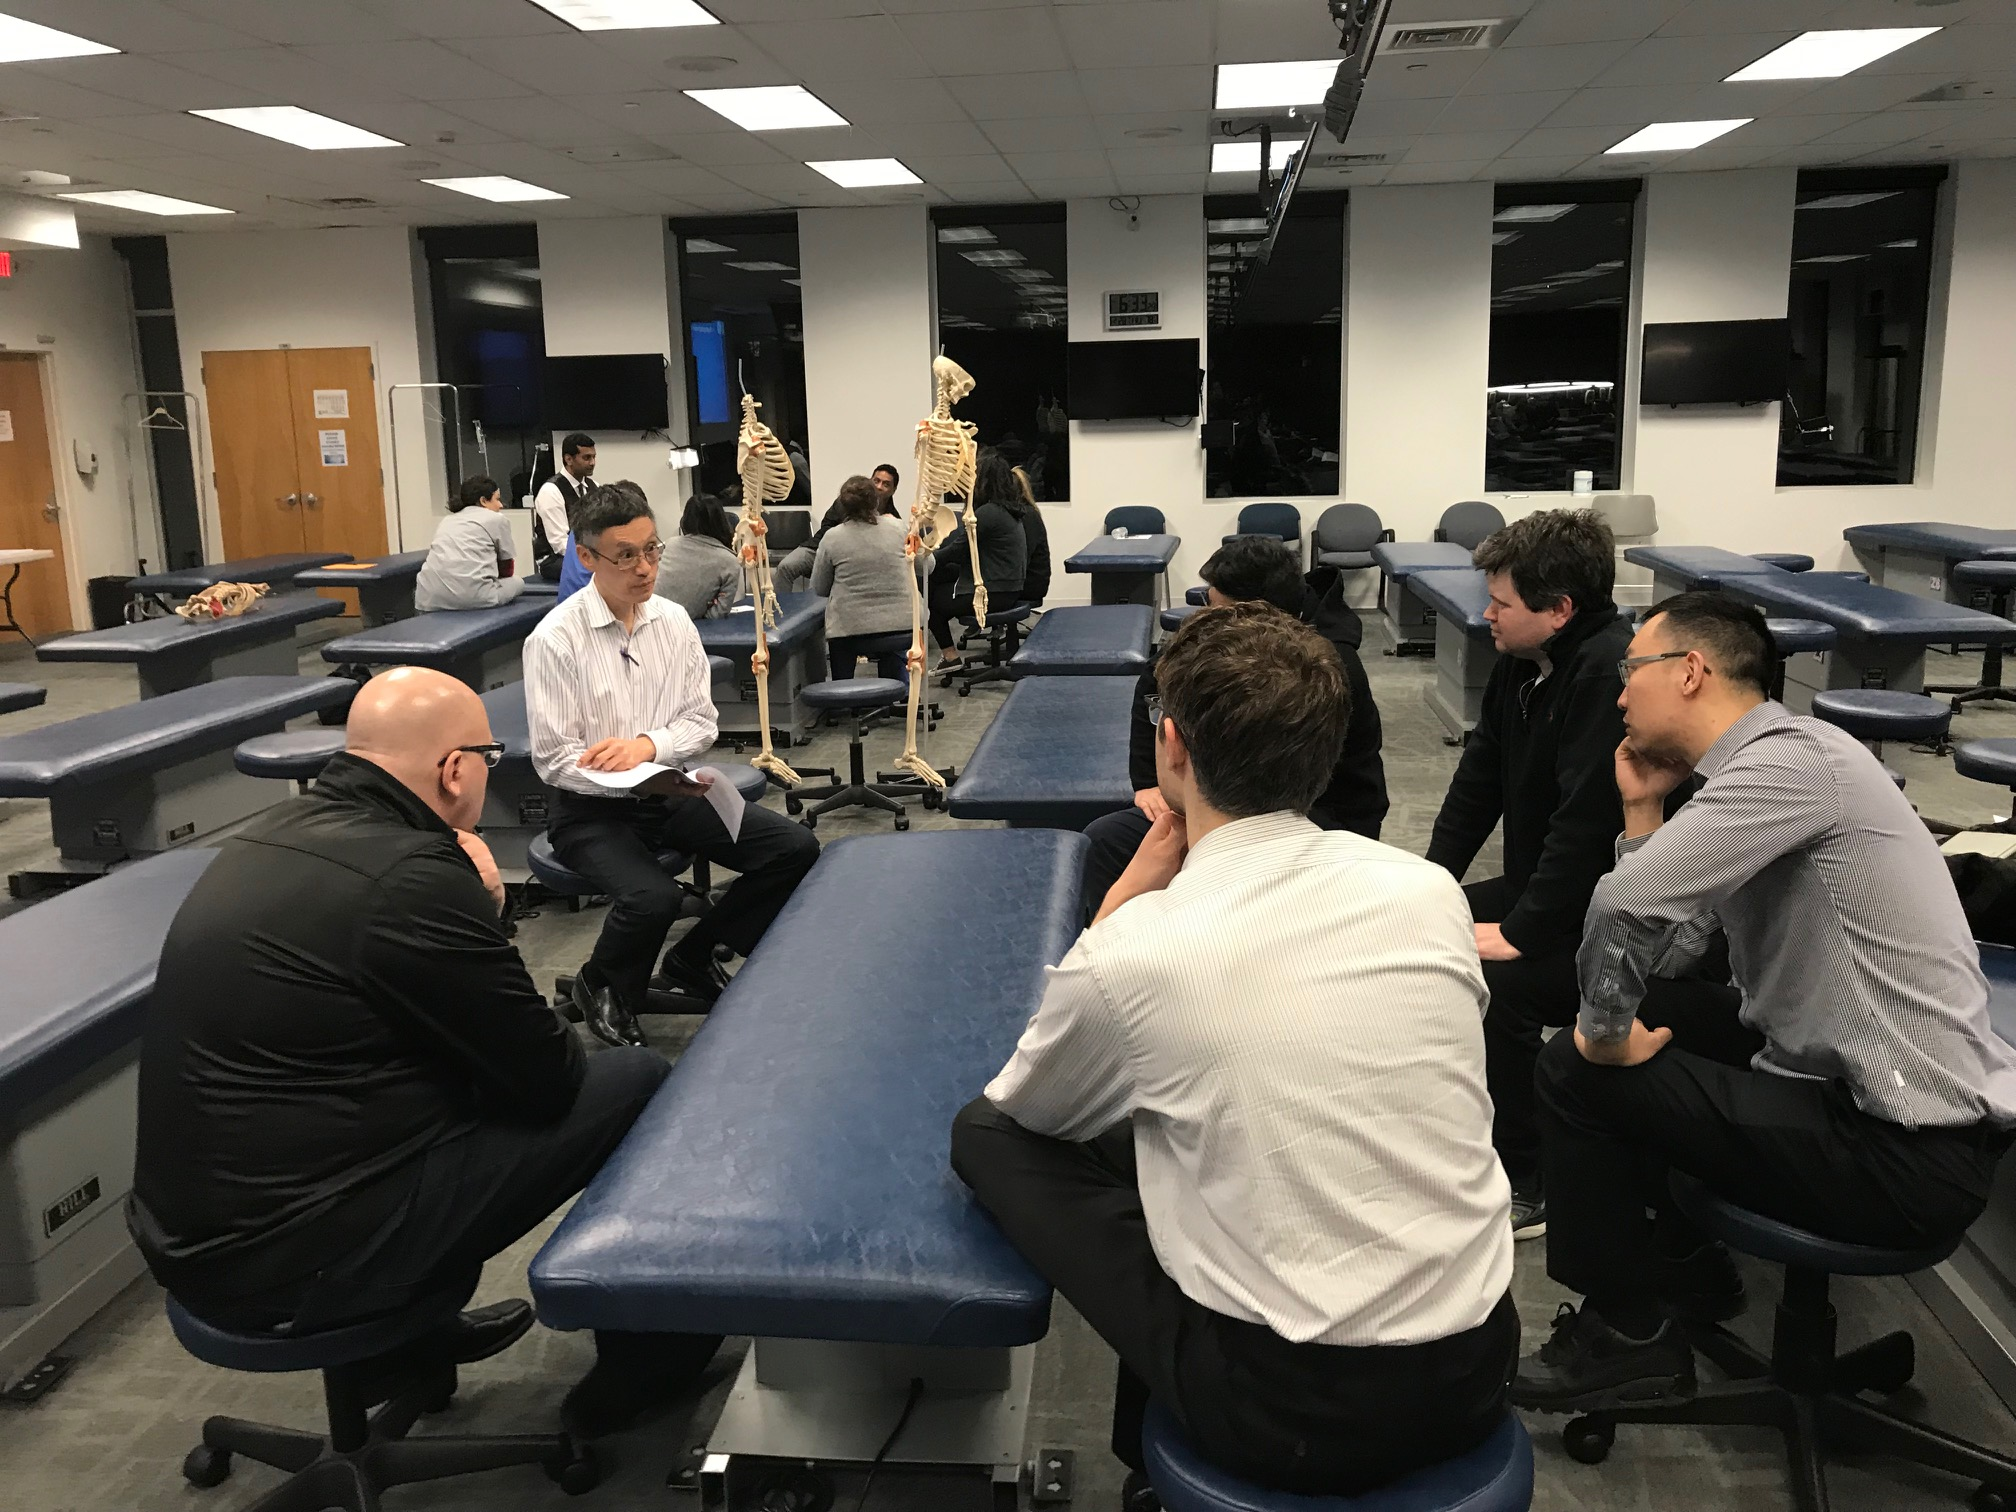 Dr. To Shan Li D.O. and the physician participants reviewing case scenarios with osteopathic considerations